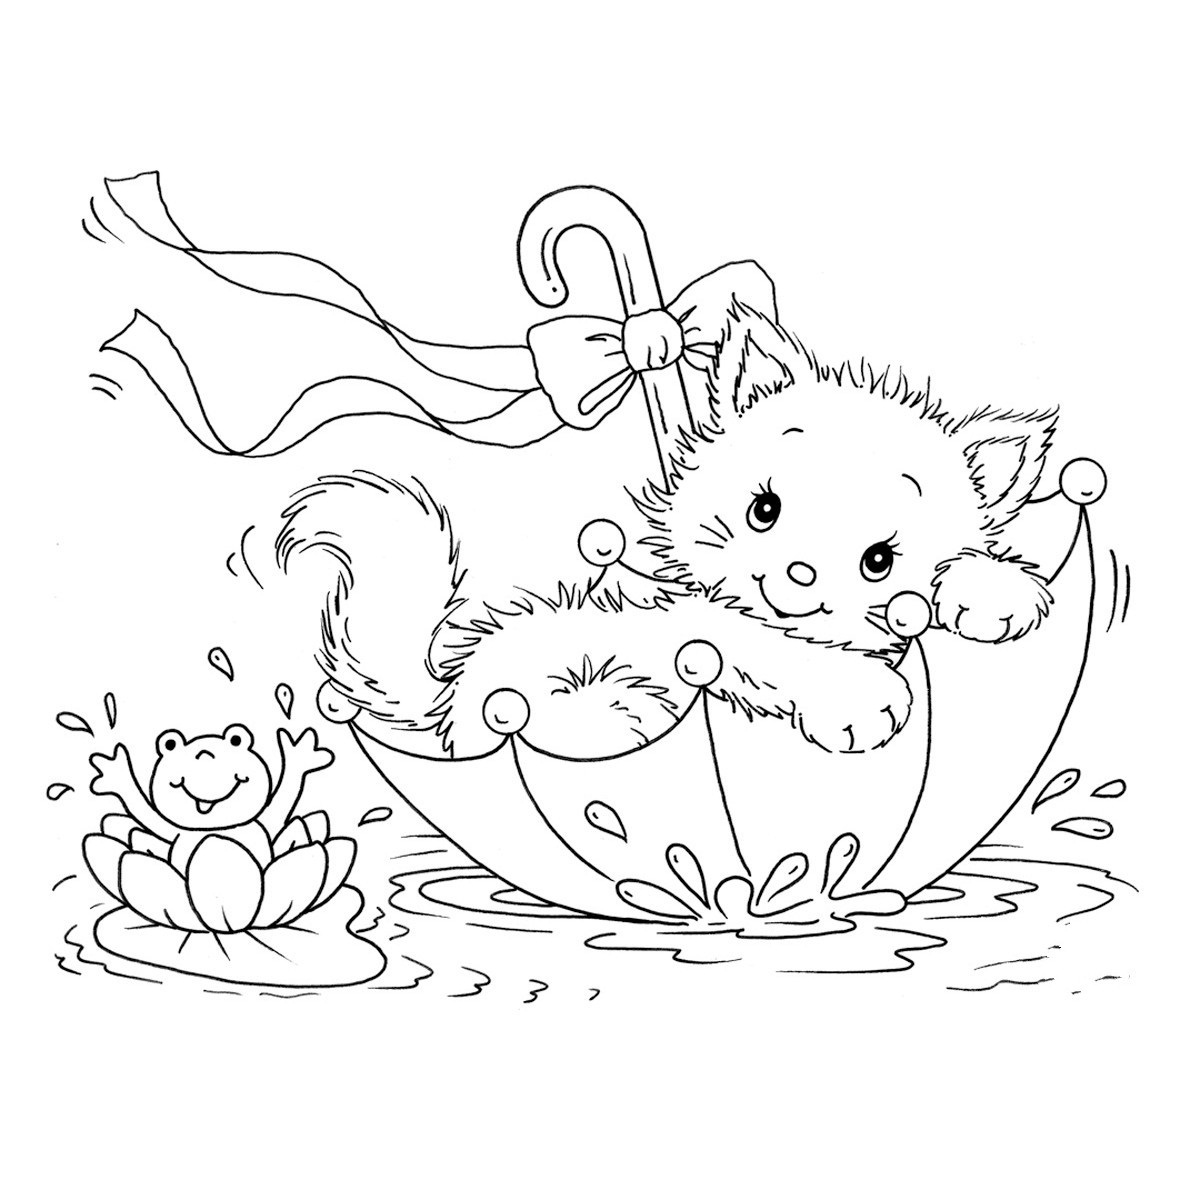 cat coloring picture cat coloring pages for adults best coloring pages for kids picture cat coloring